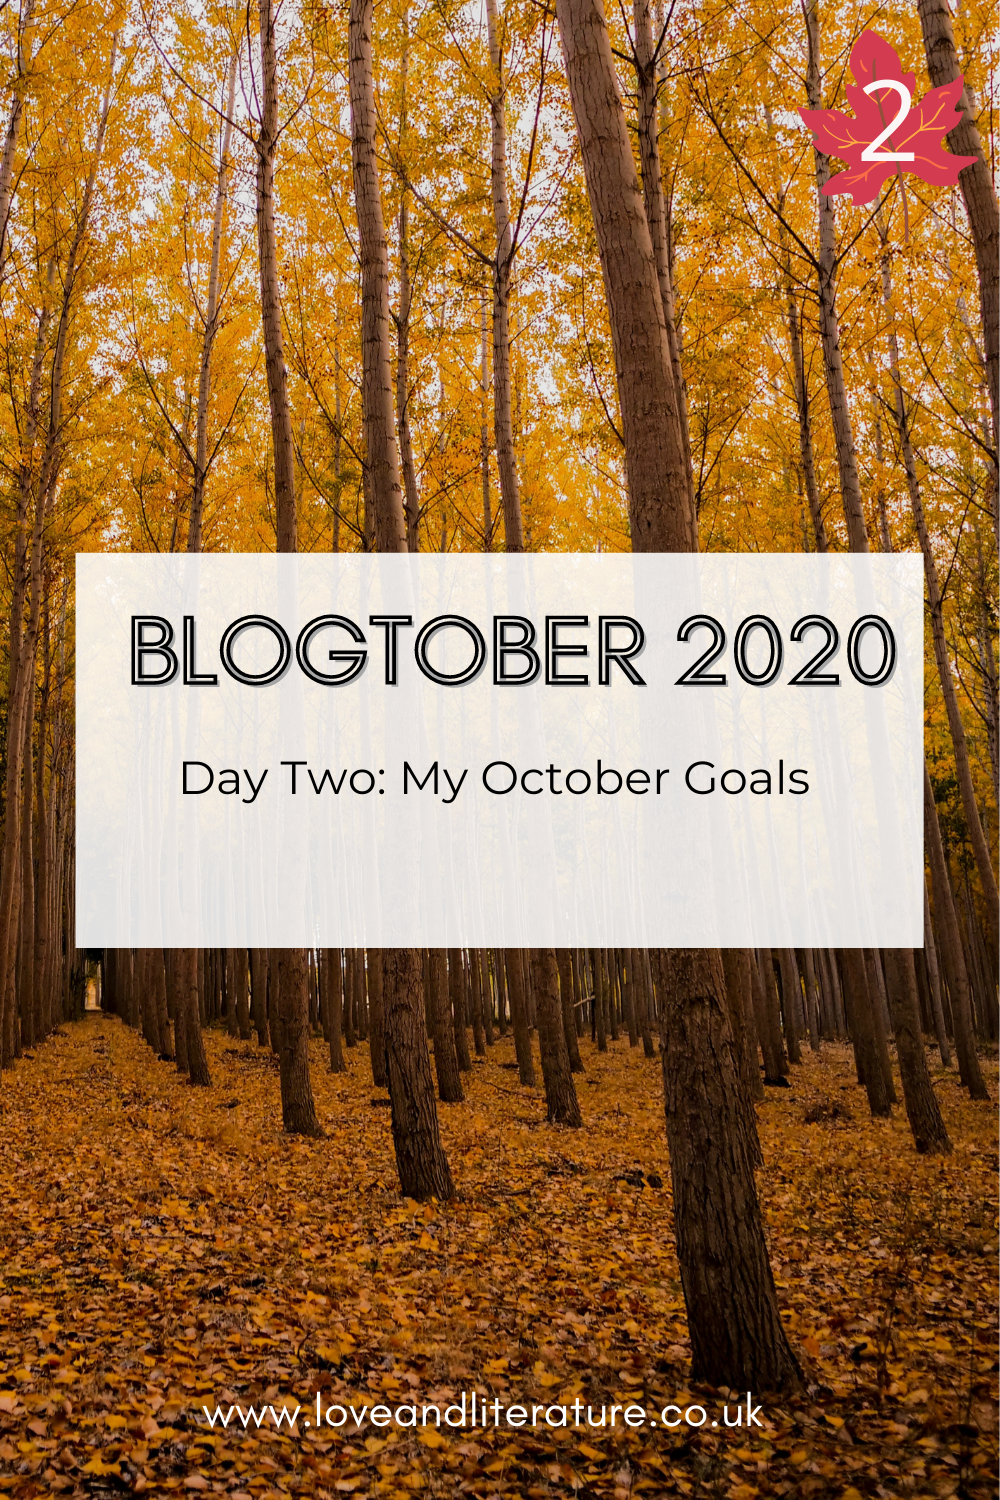 October Goals, Blogtober Day Two, Autumnal Trees background, text at front